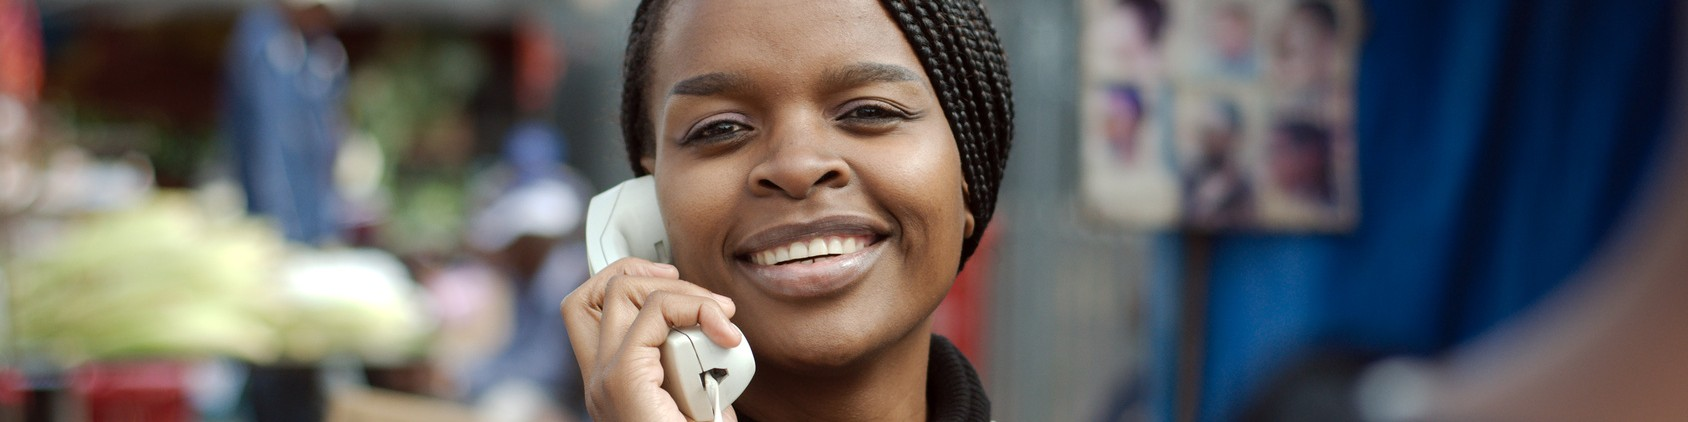 African or black American woman calling on IP telephone in Alexandra township